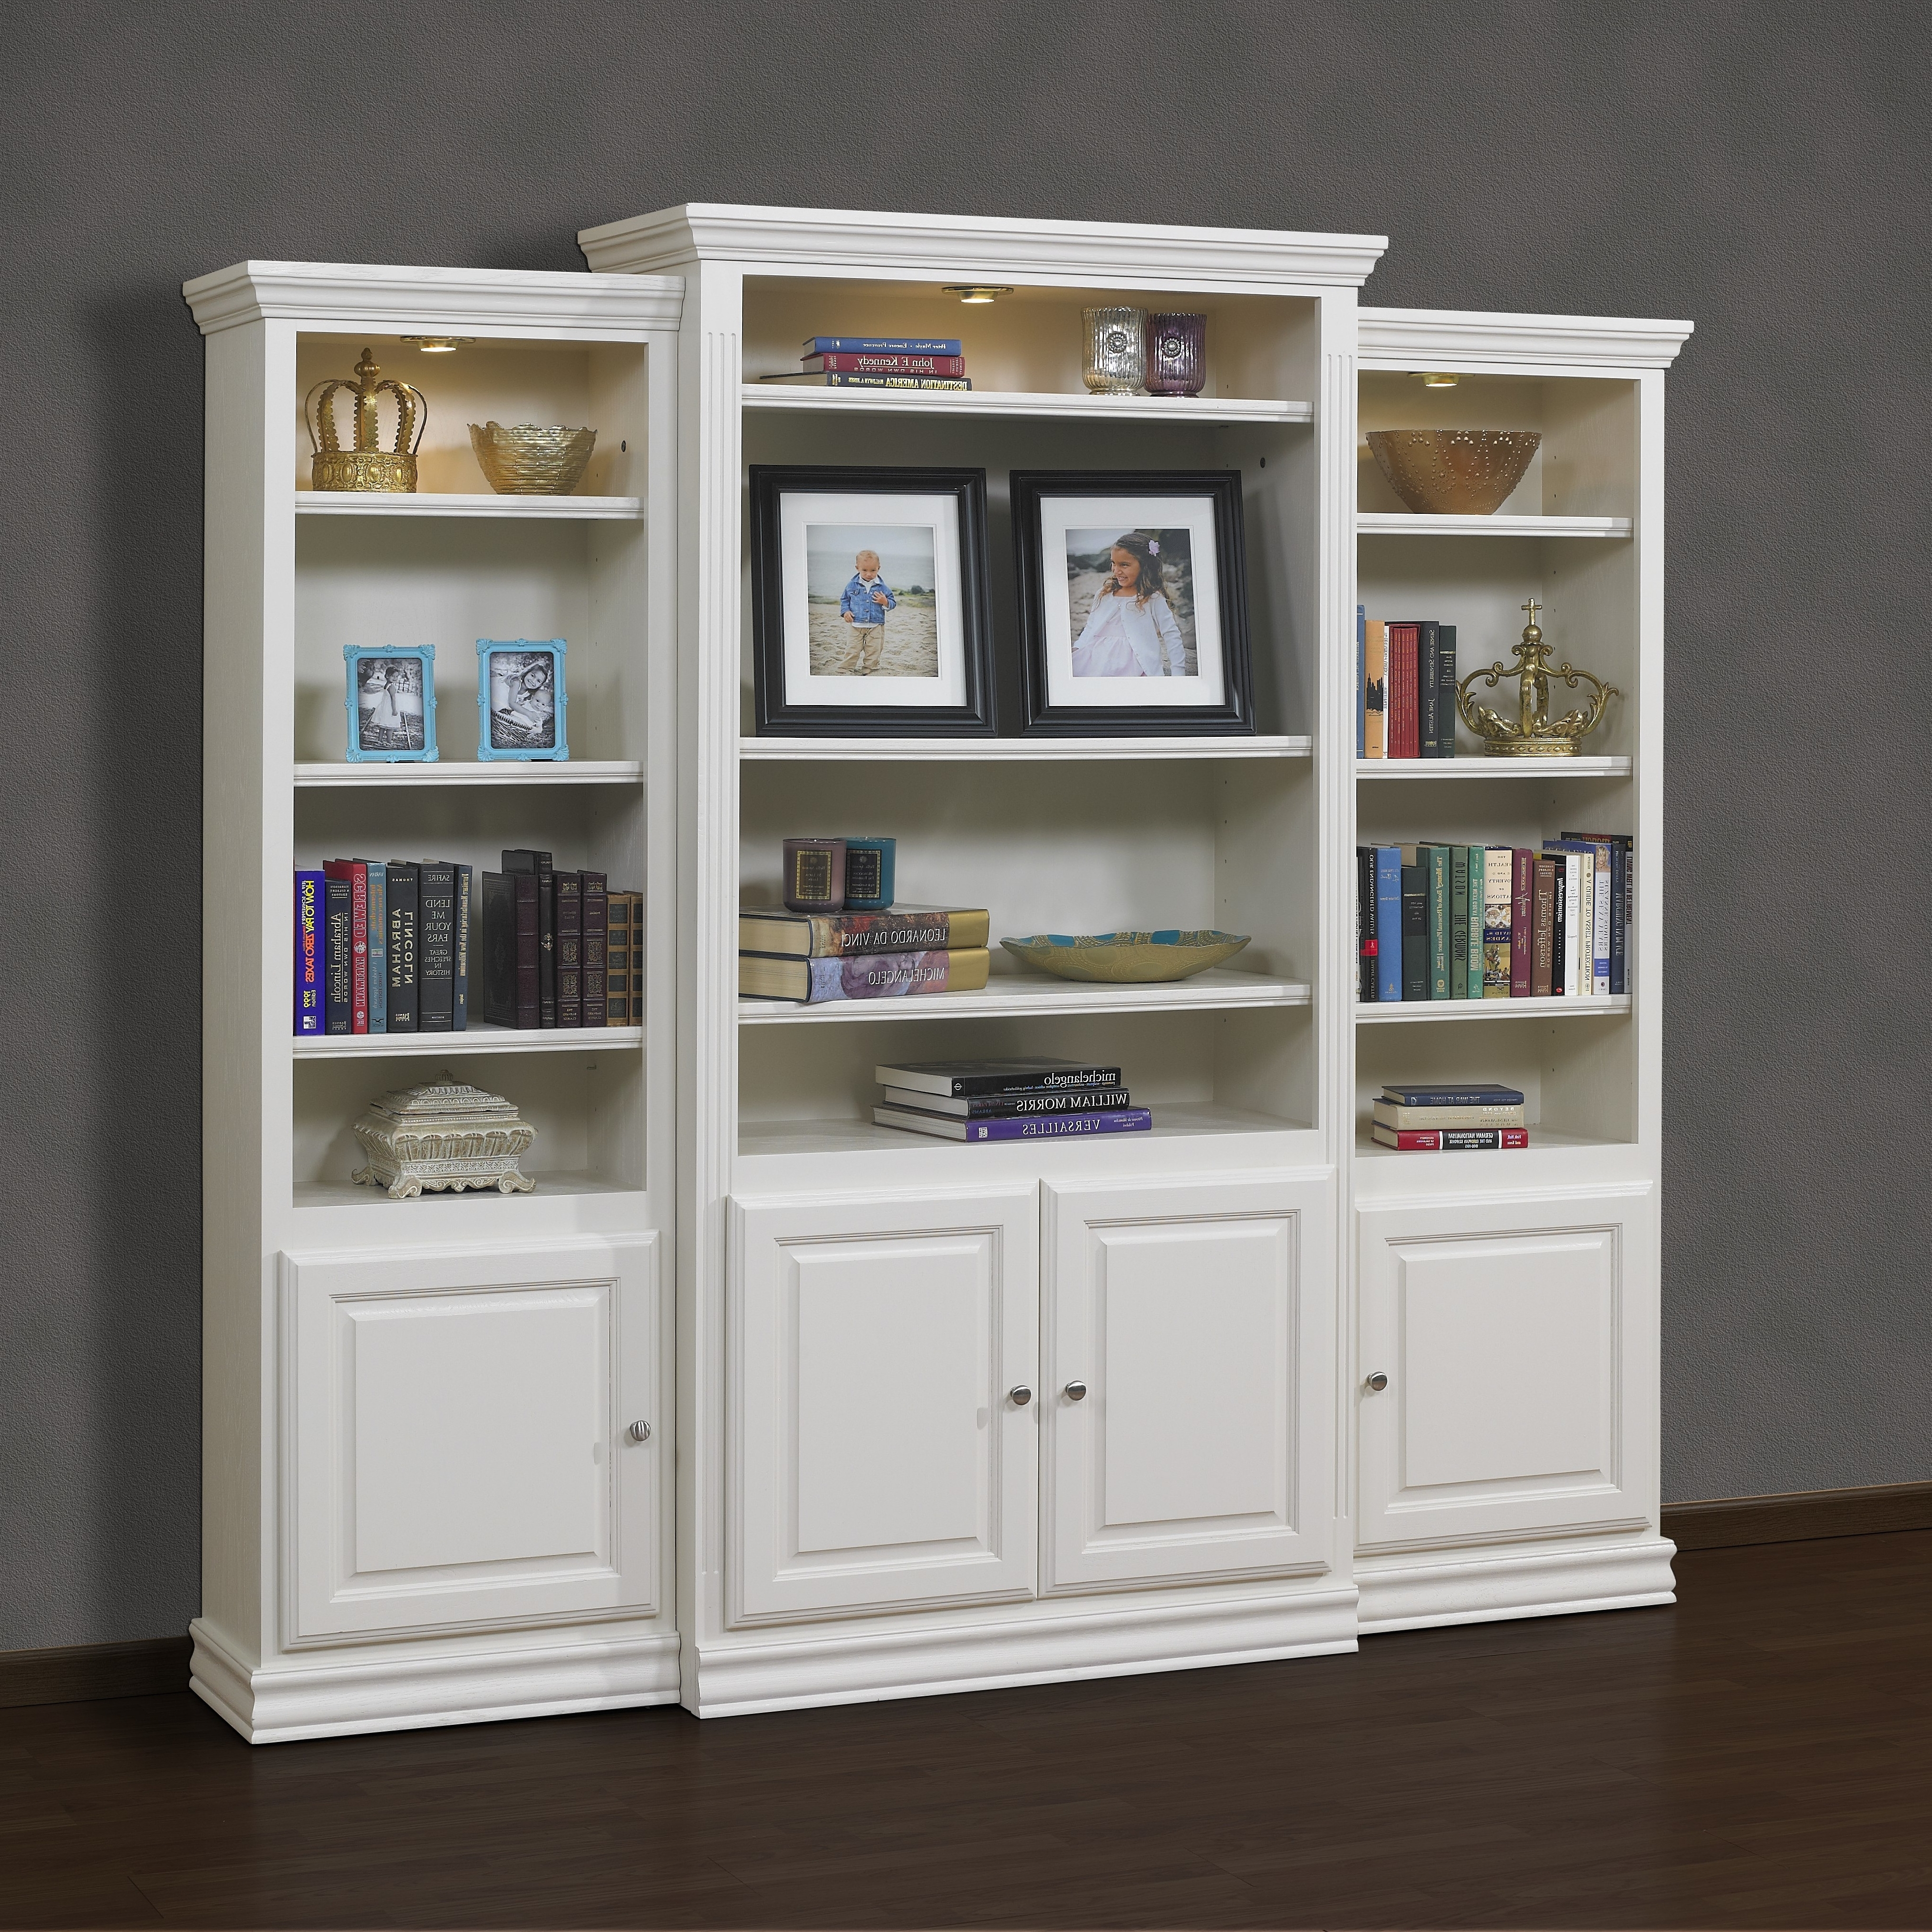 Tremendous Bookshelf Cabinet White Bookcase With Glass Door Intended For Current White Bookcases With Cupboard (View 6 of 15)